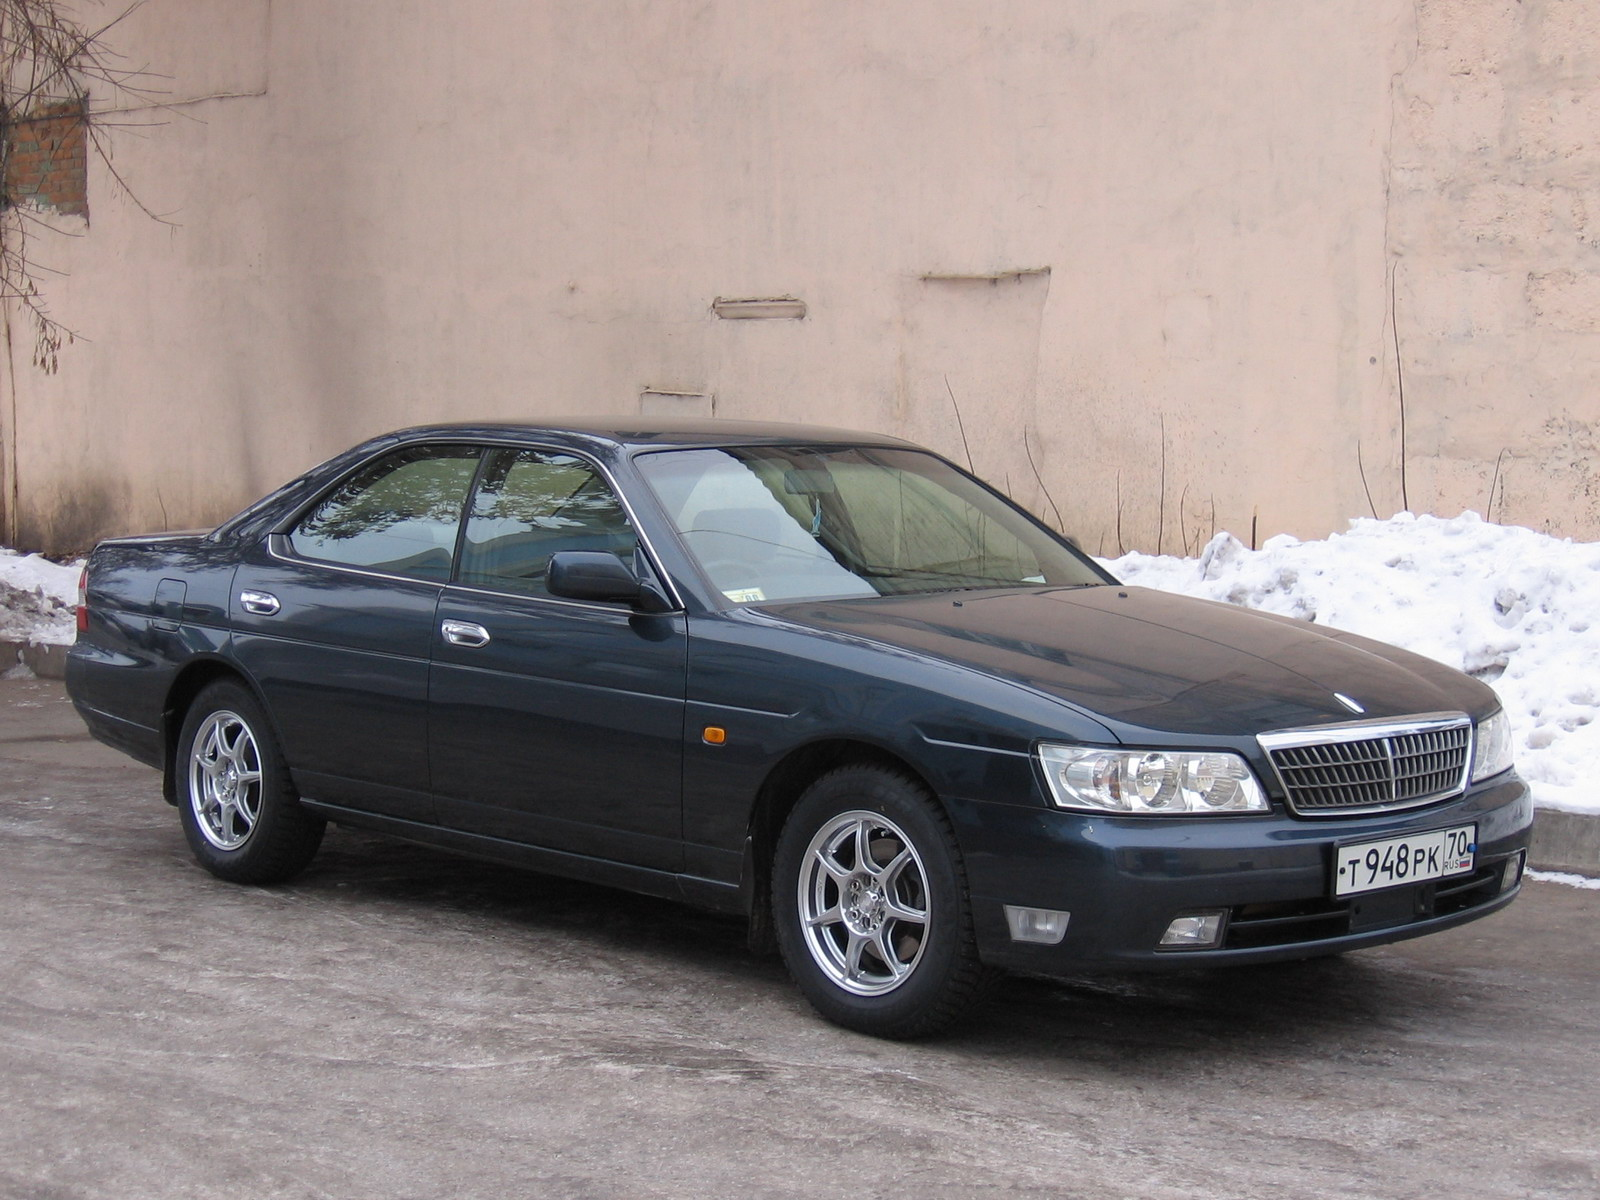 2001 Nissan Laurel #5